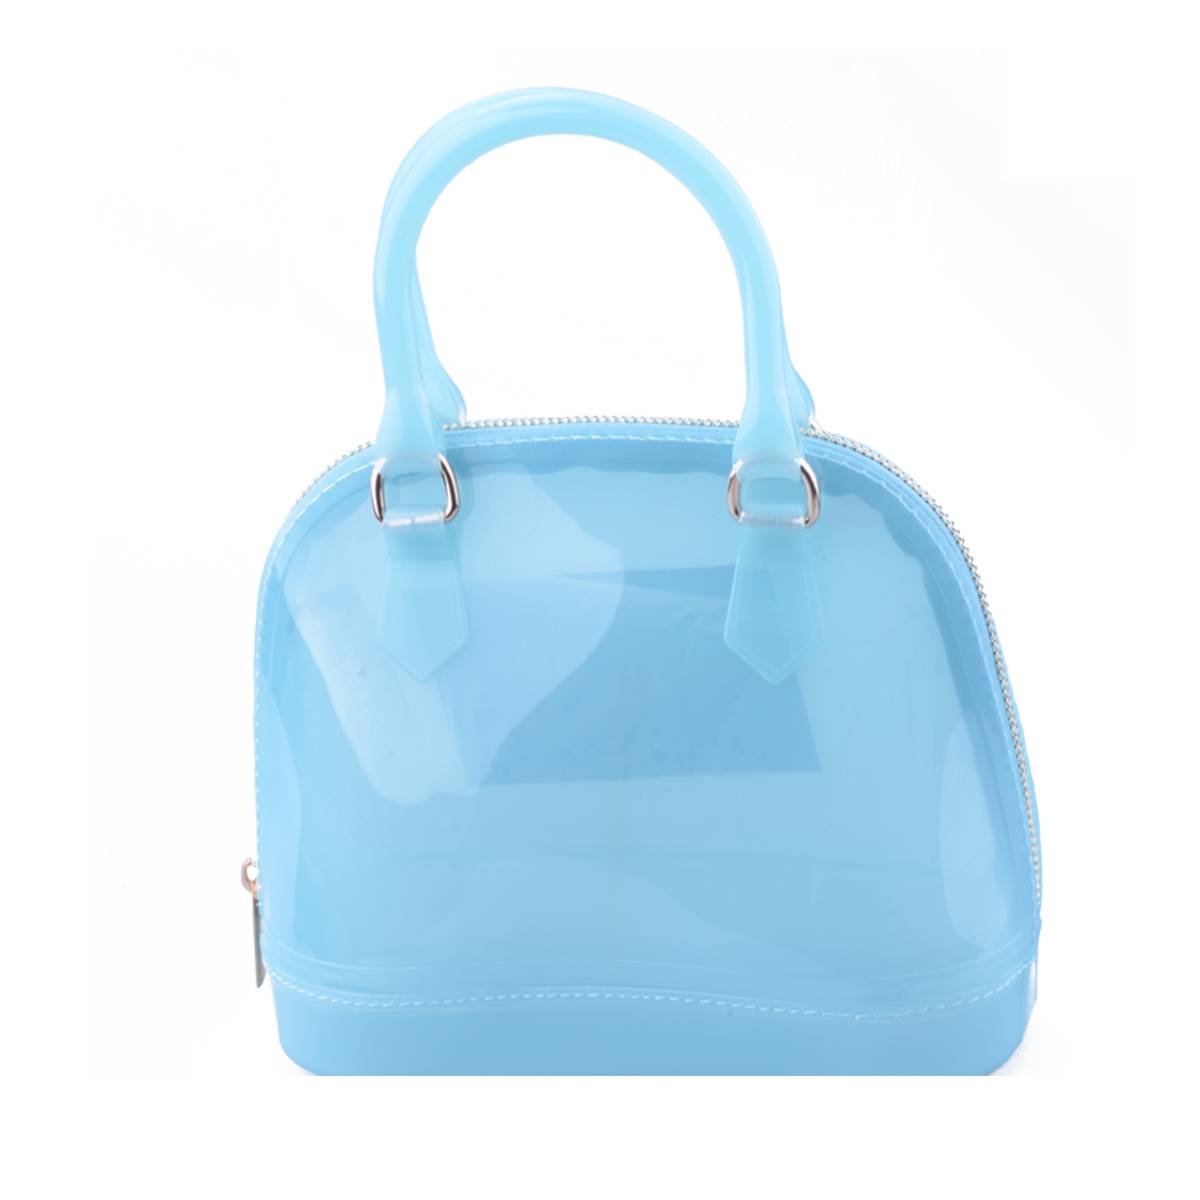 Fashion Waterproof Beach Bags Women Shopping Silicone Handbags